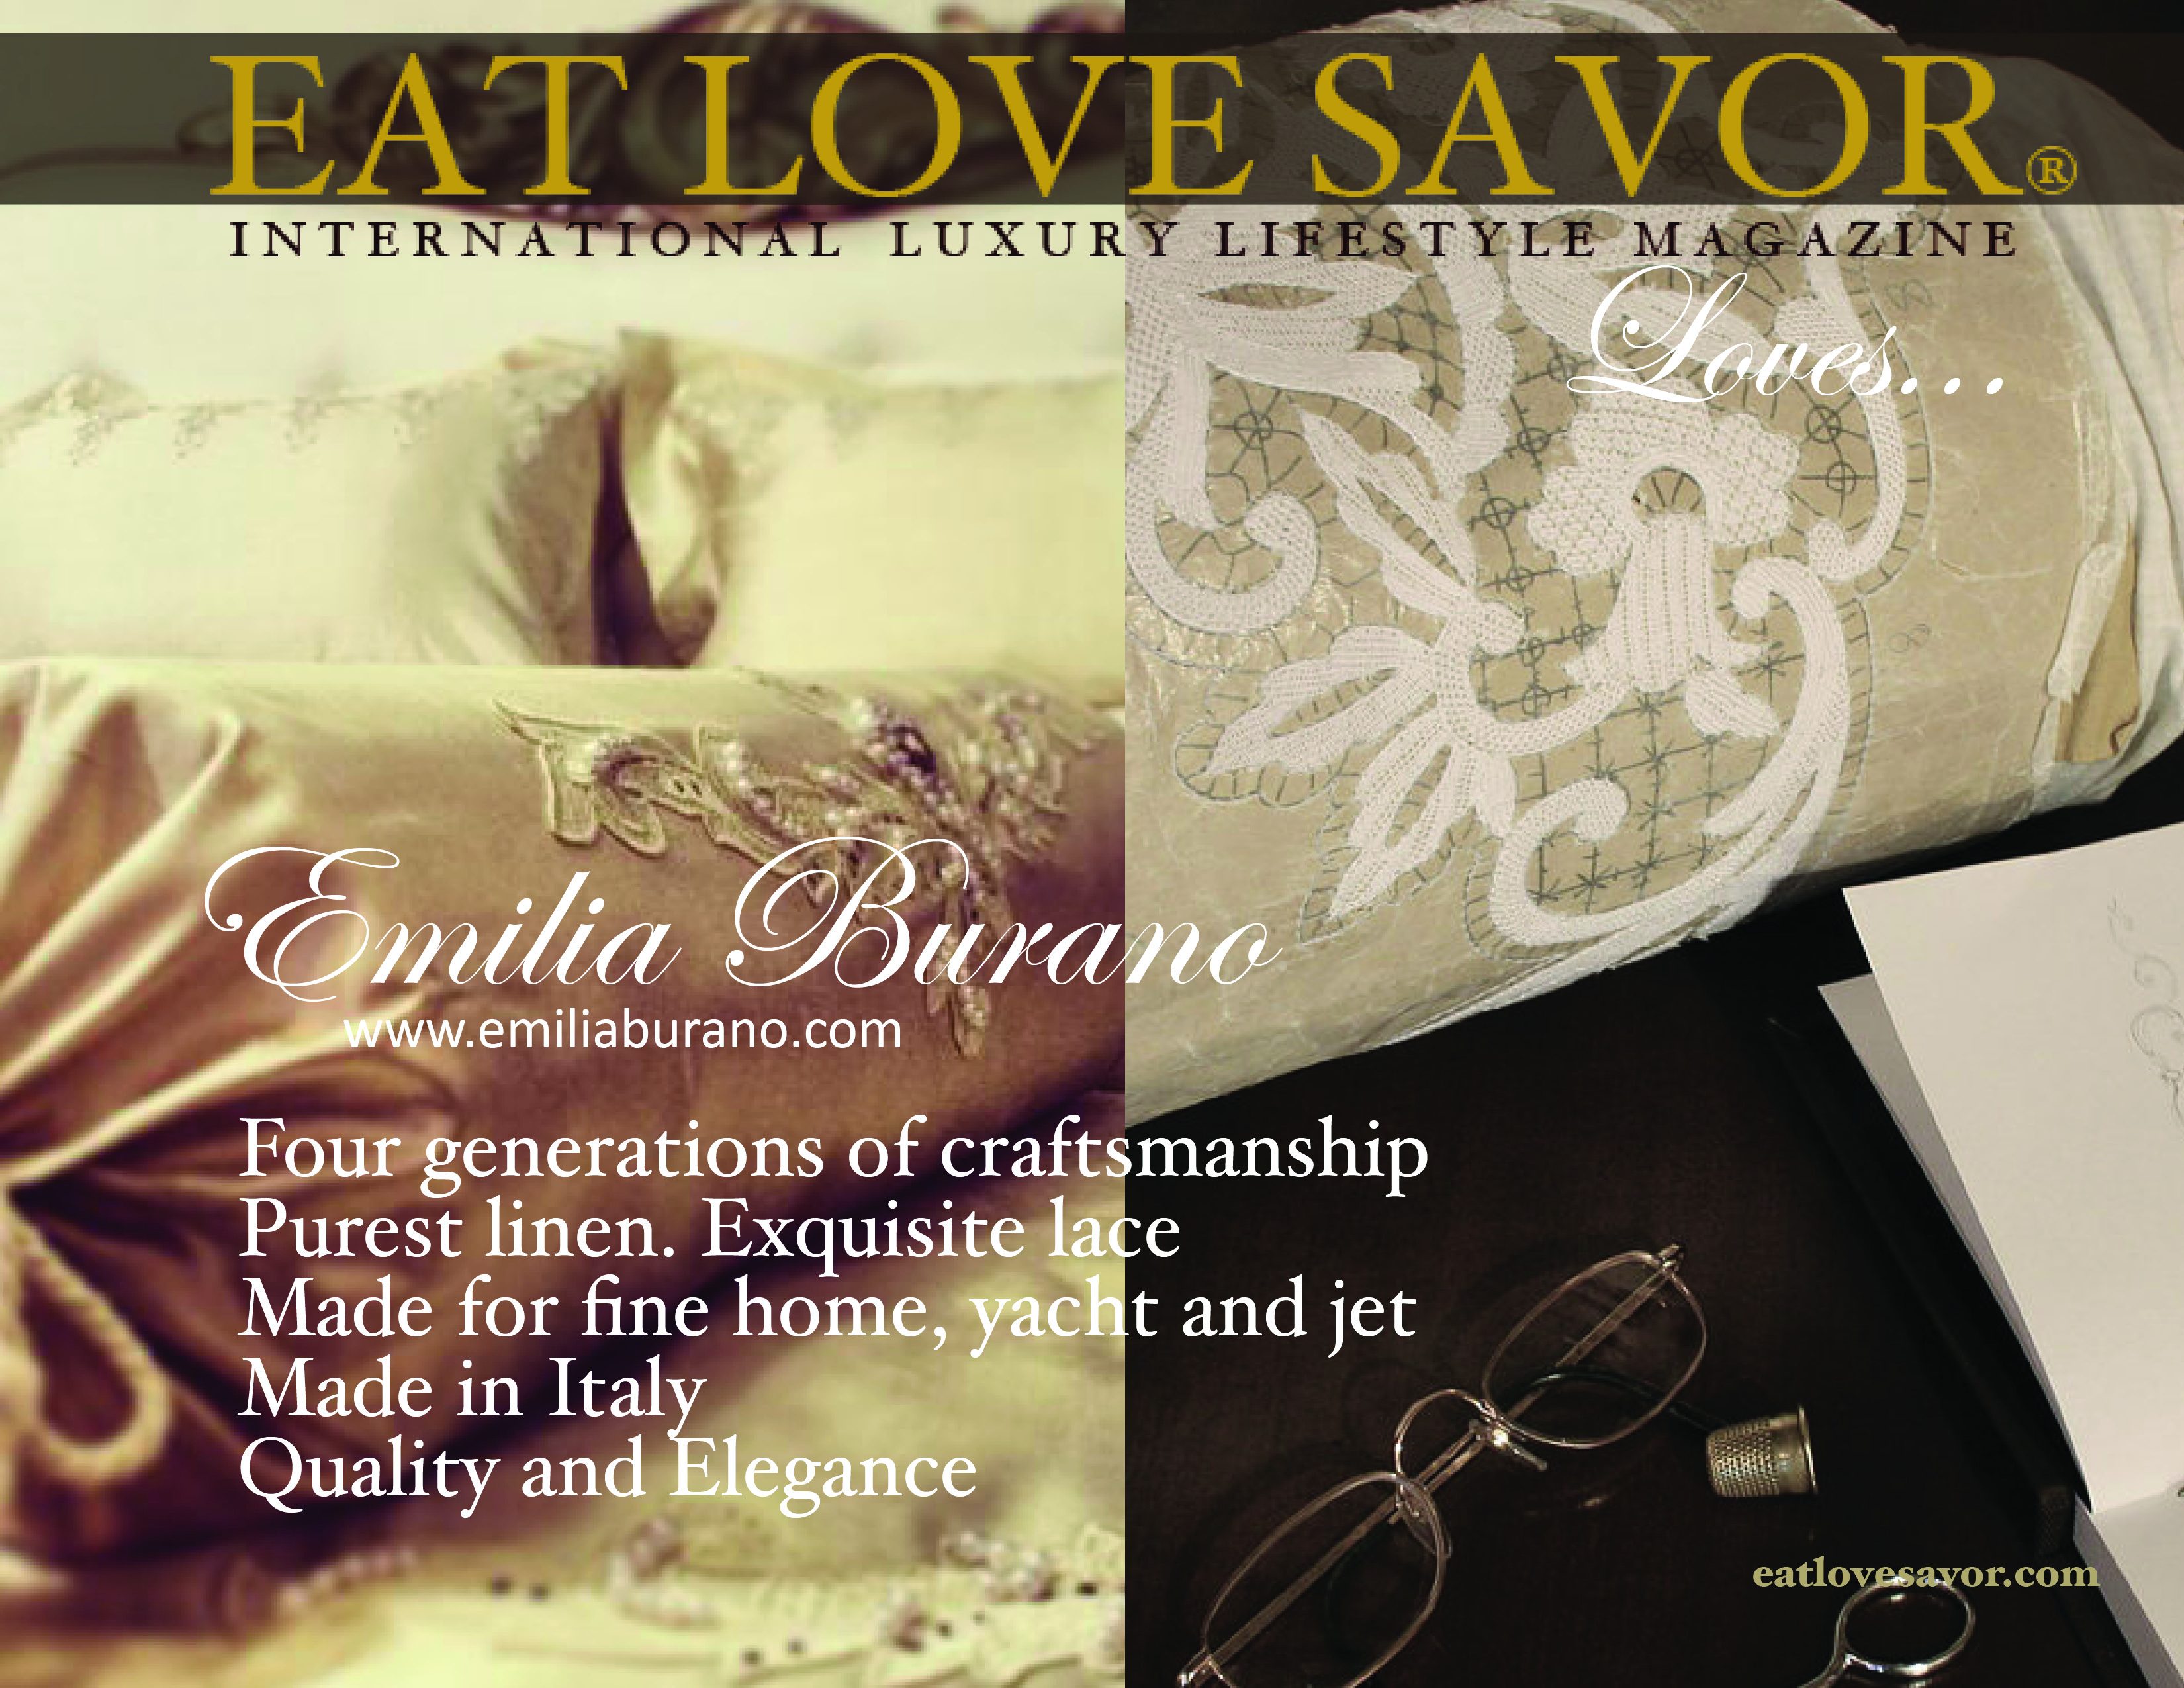 luxury lifestyle magazine - eat love savor